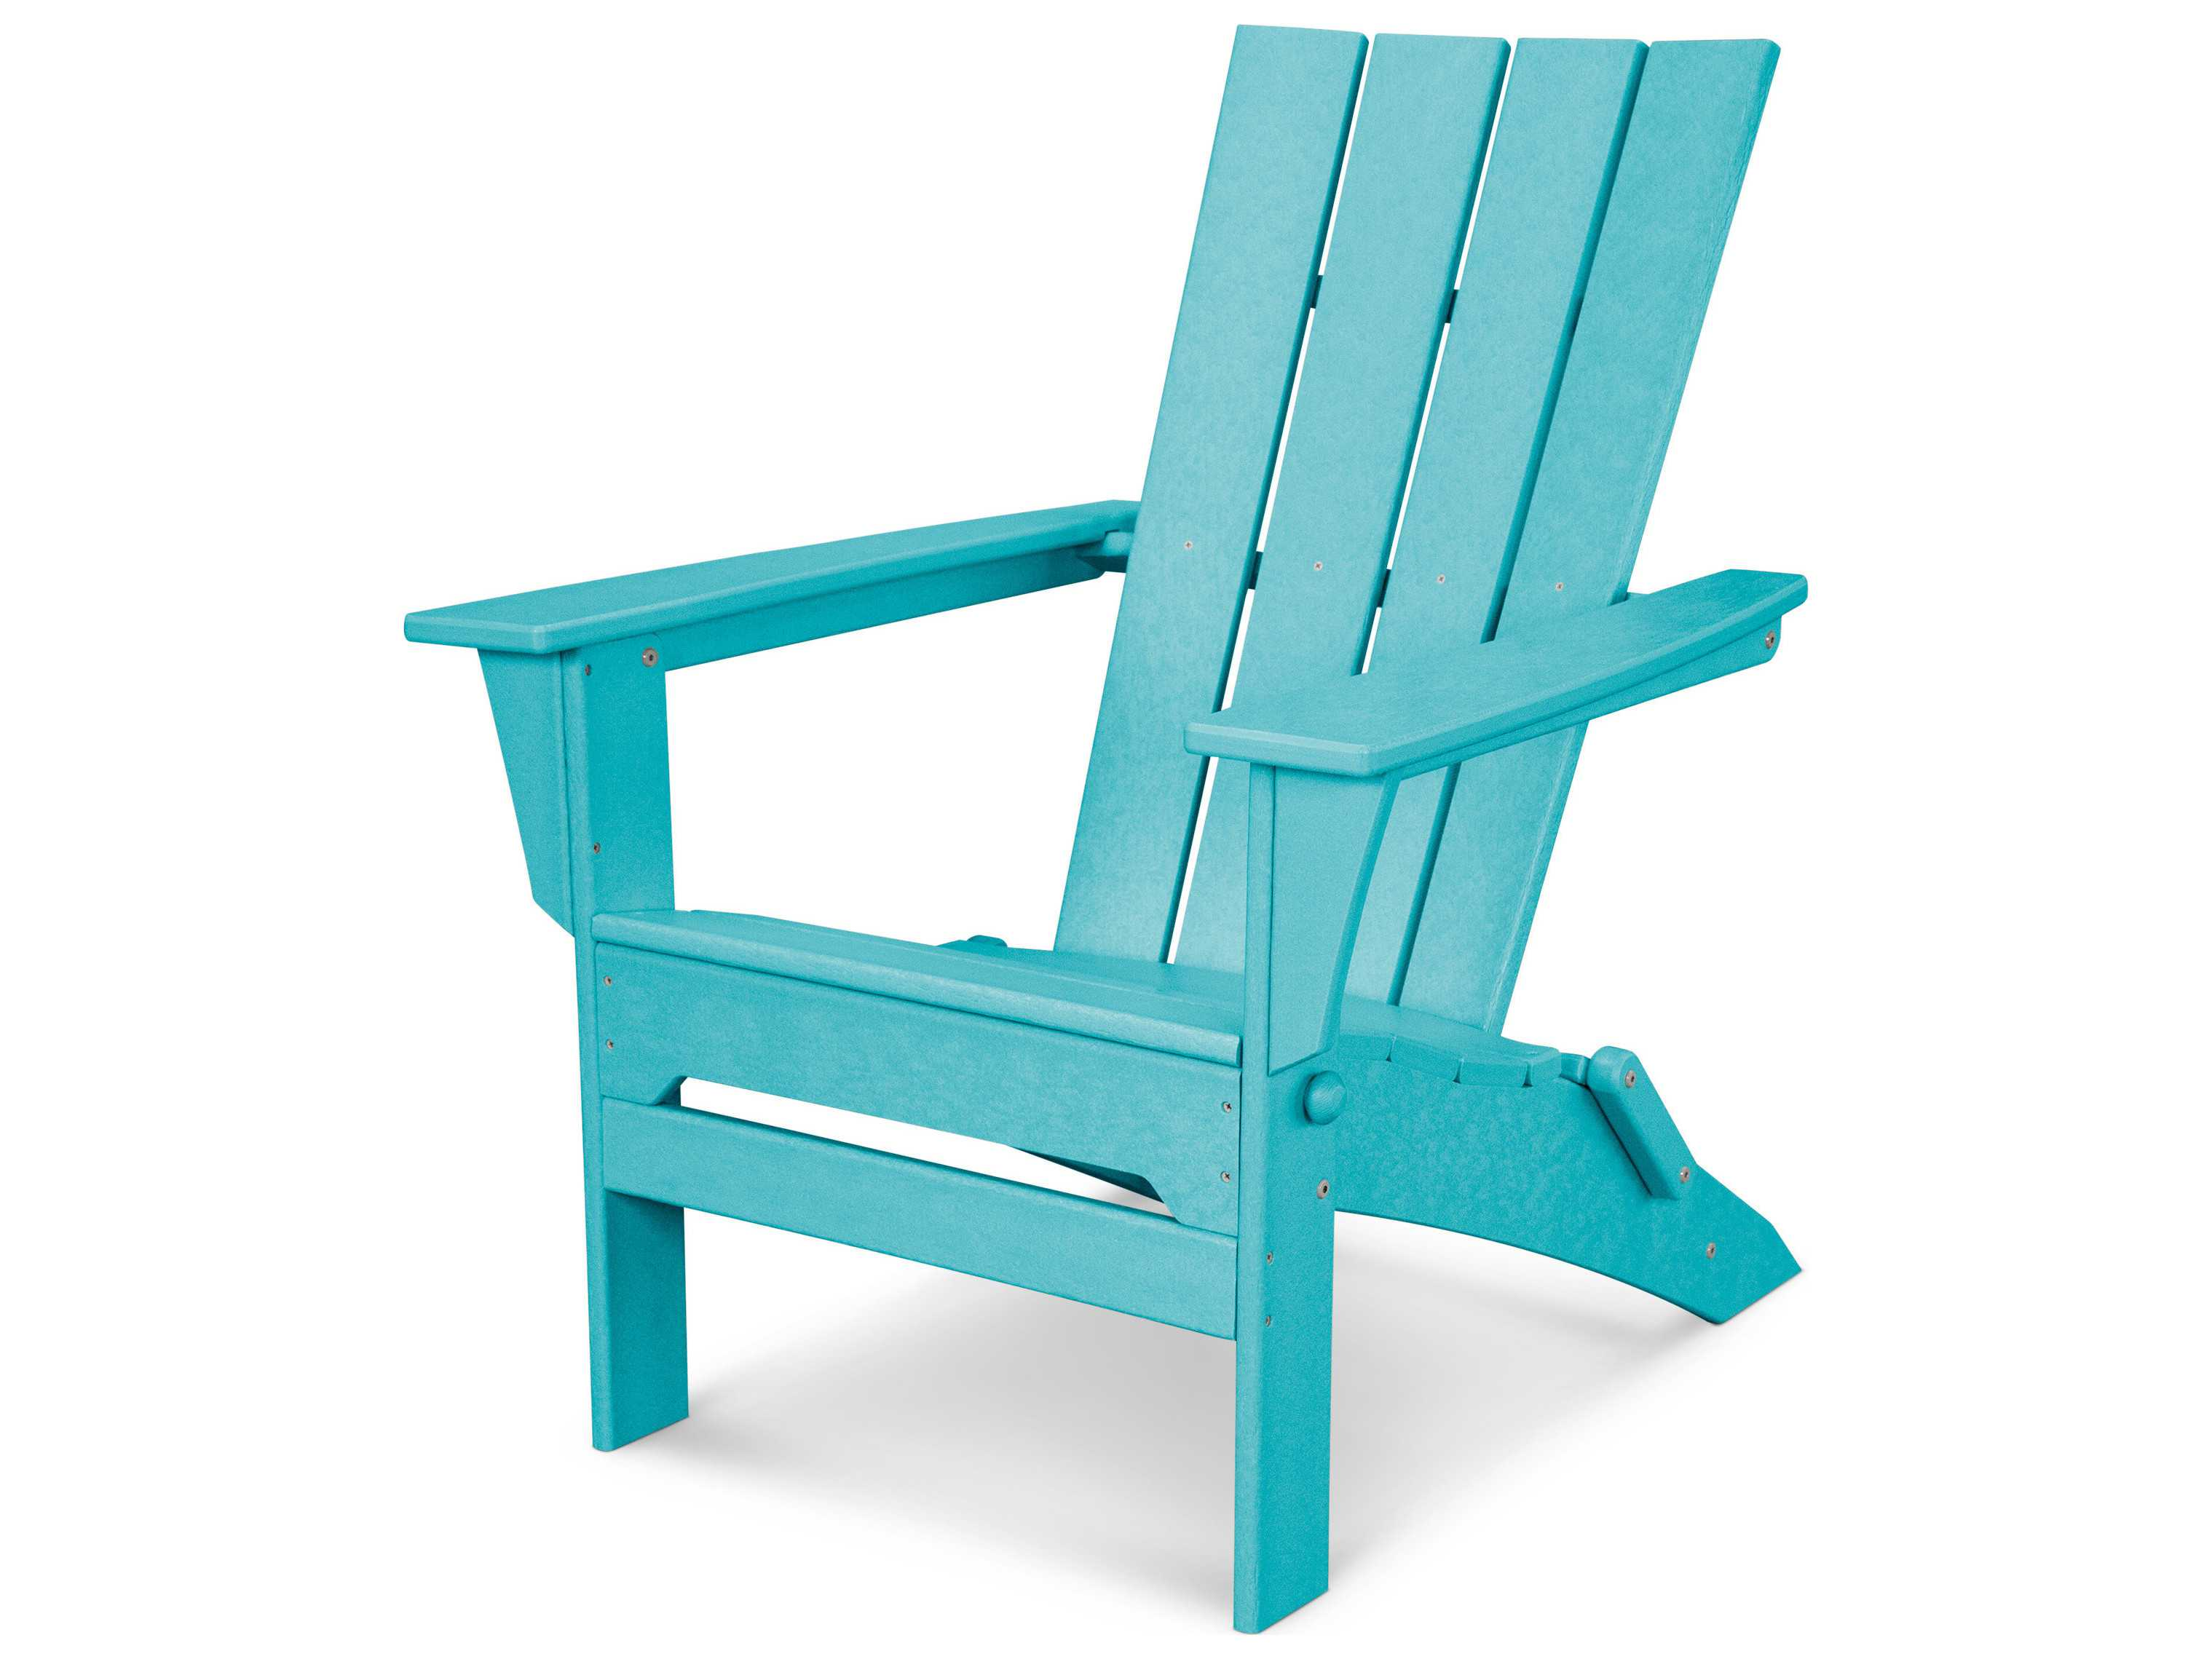 plastic deck chairs crate and barrel chair polywood quattro recycled folding adirondack qna110